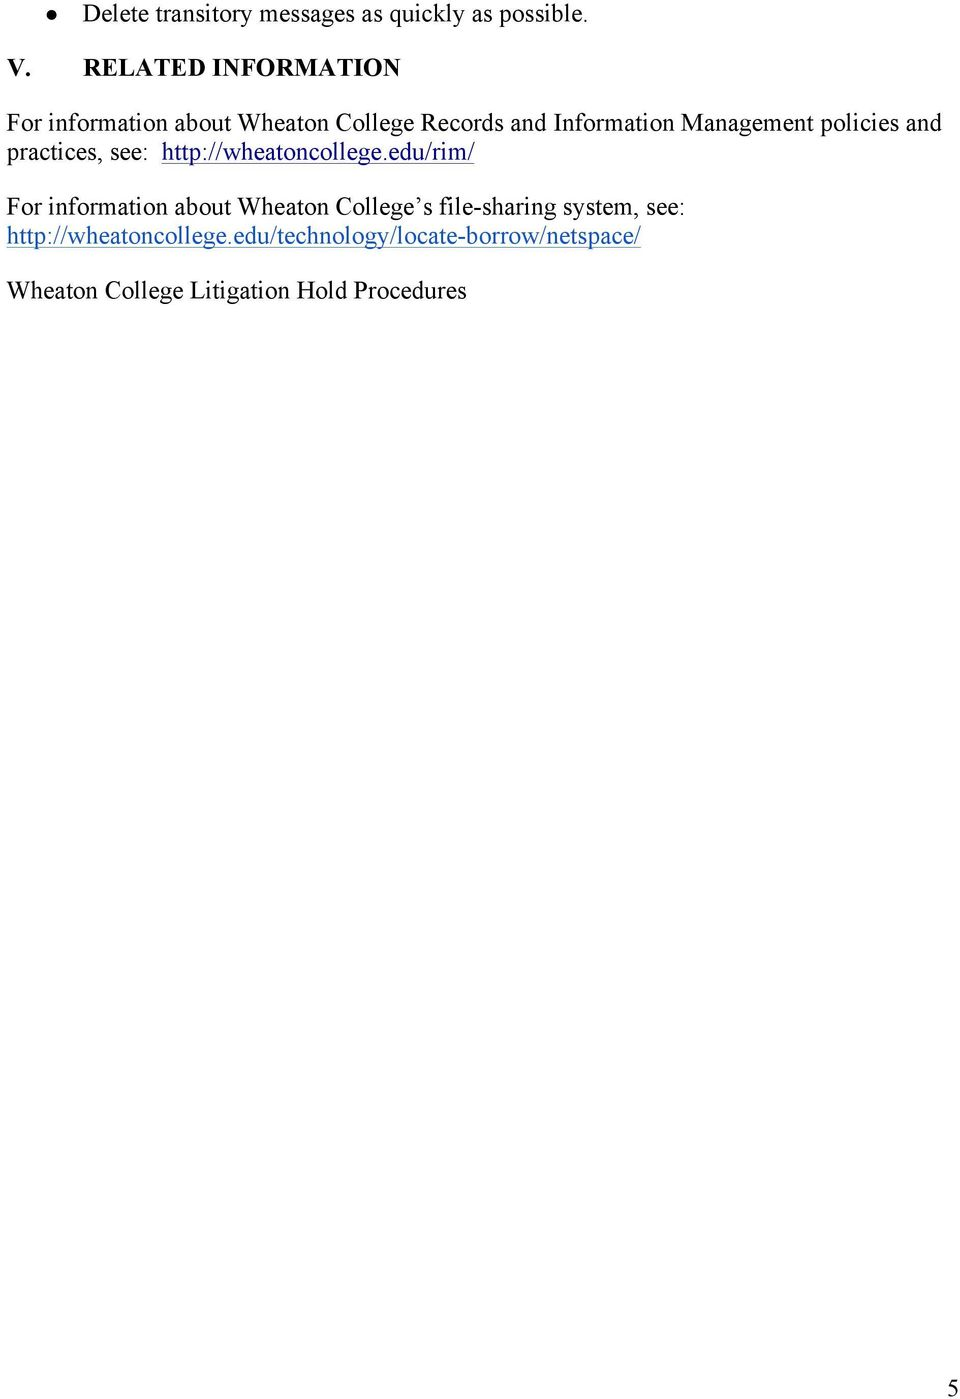 policies and practices, see: http://wheatoncollege.